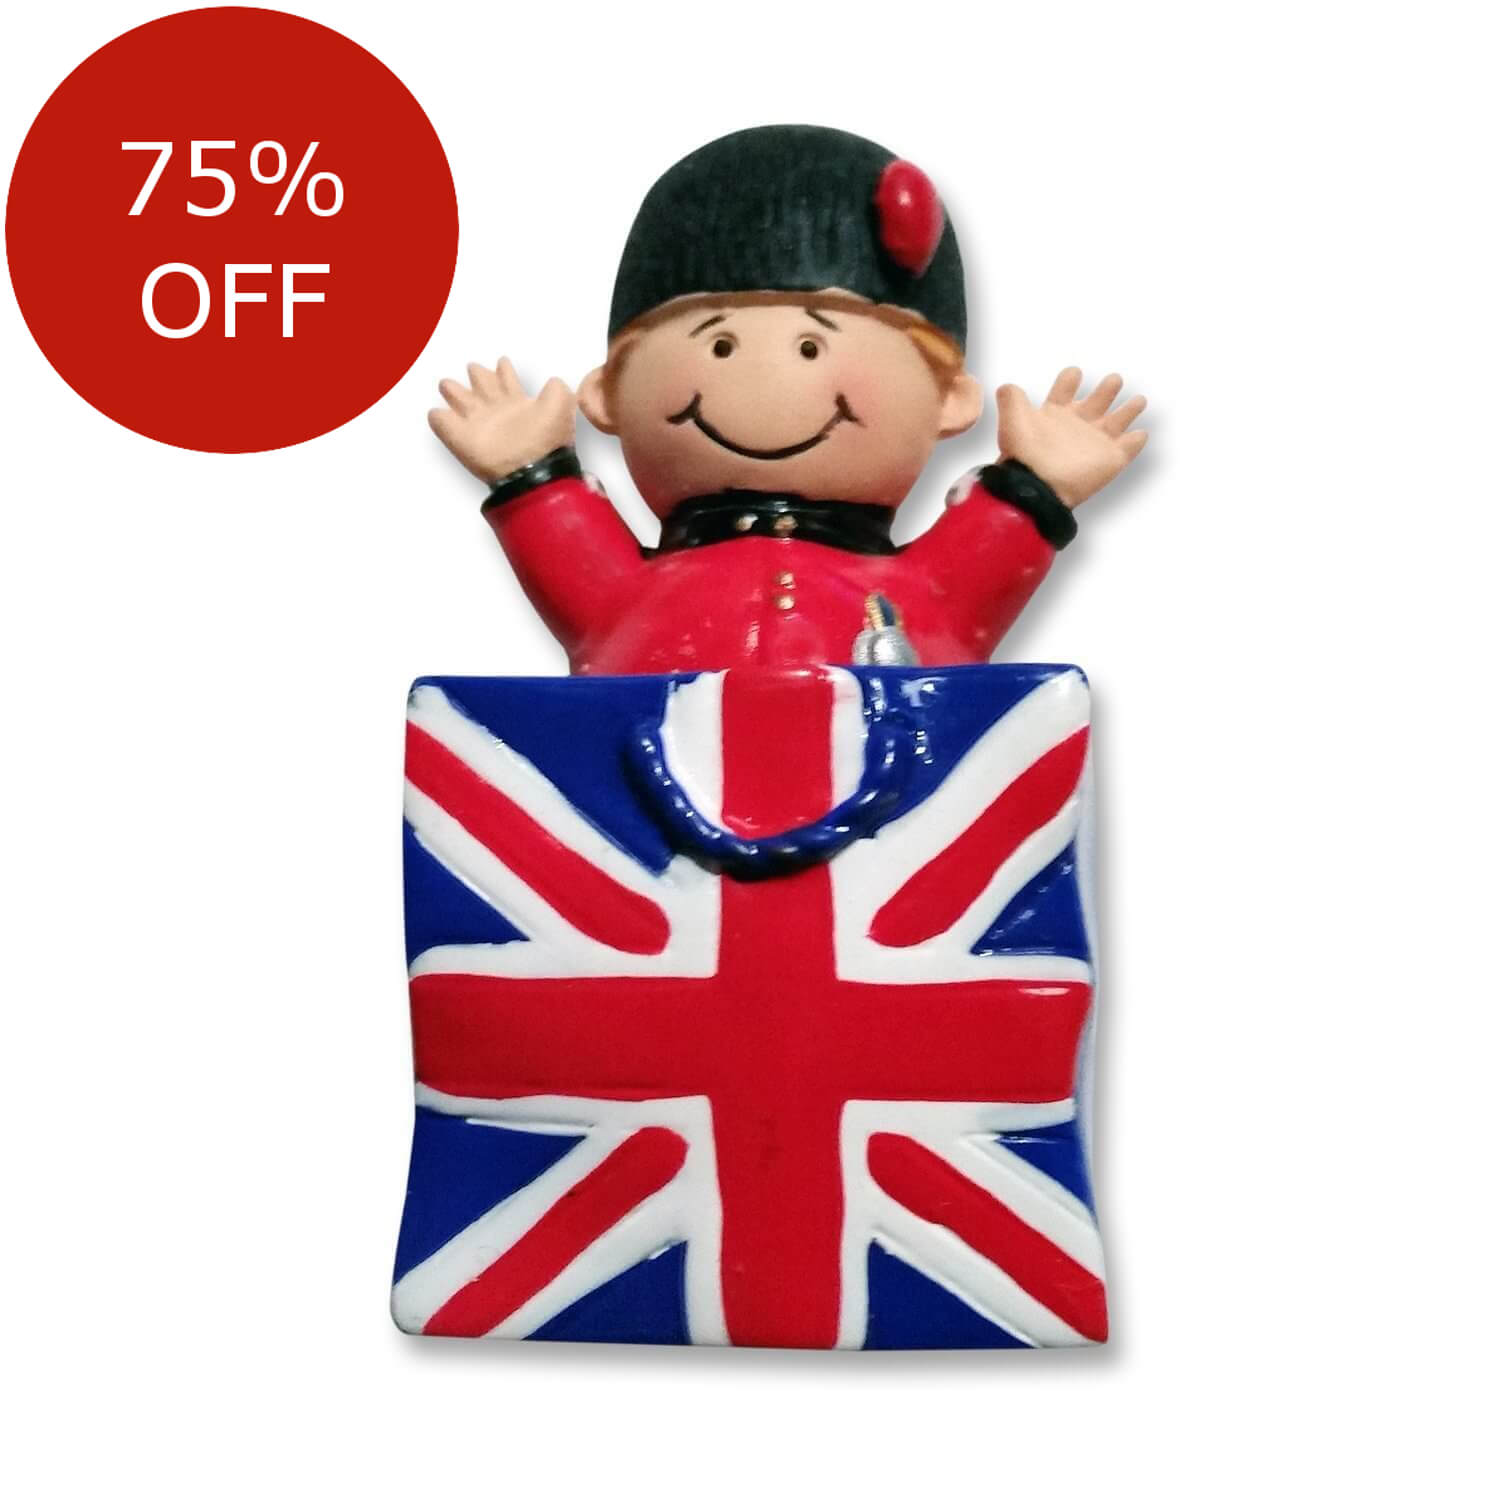 Royal Guard Union Jack Fridge Magnet Discount